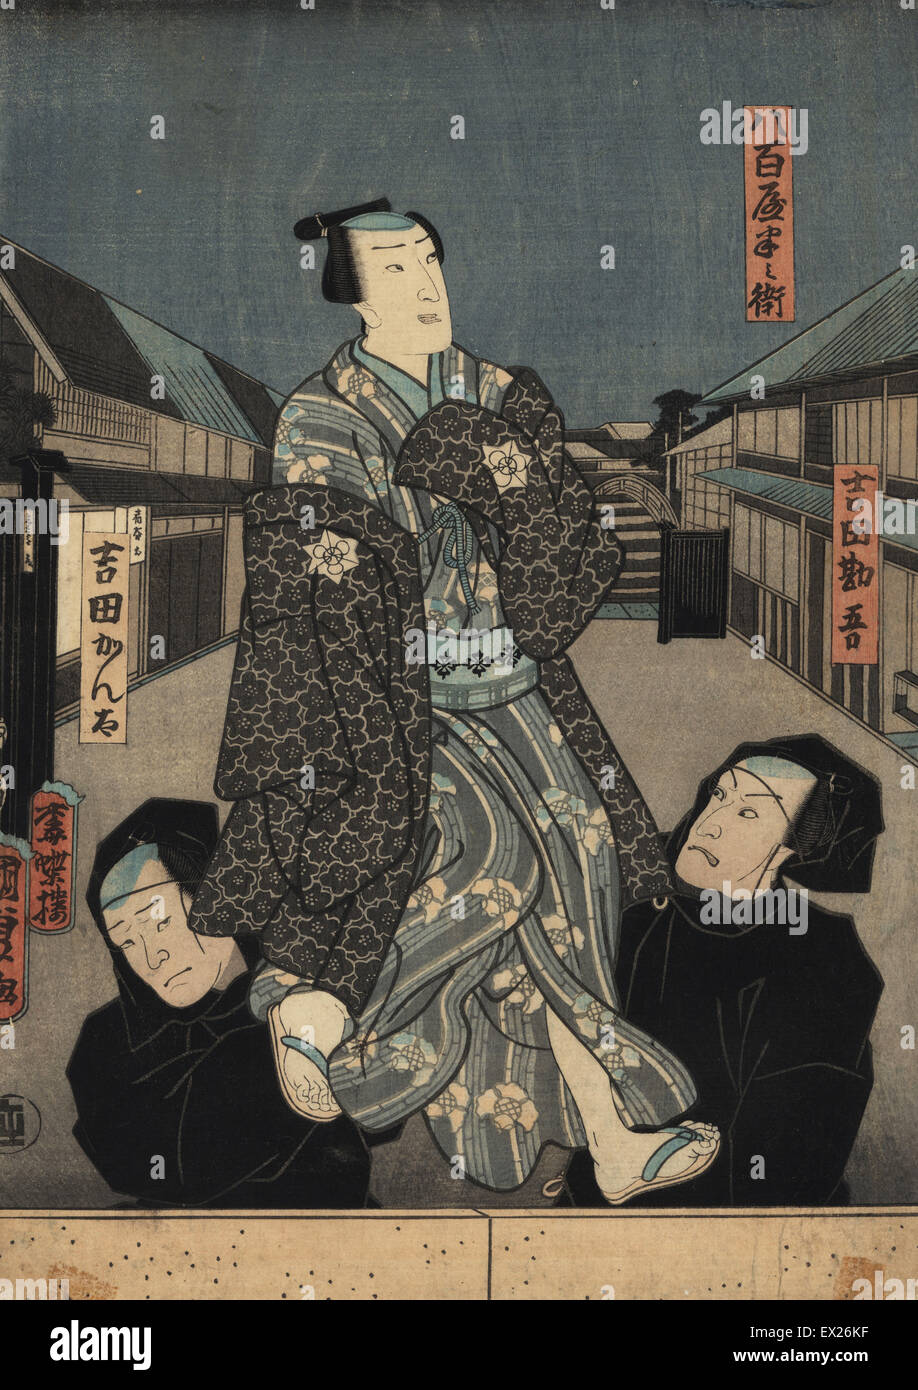 Puppet in kimono being manipulated by two bunraku puppeteers in black robes. Woodblock ukiyo-e print by Utagawa - Stock Image